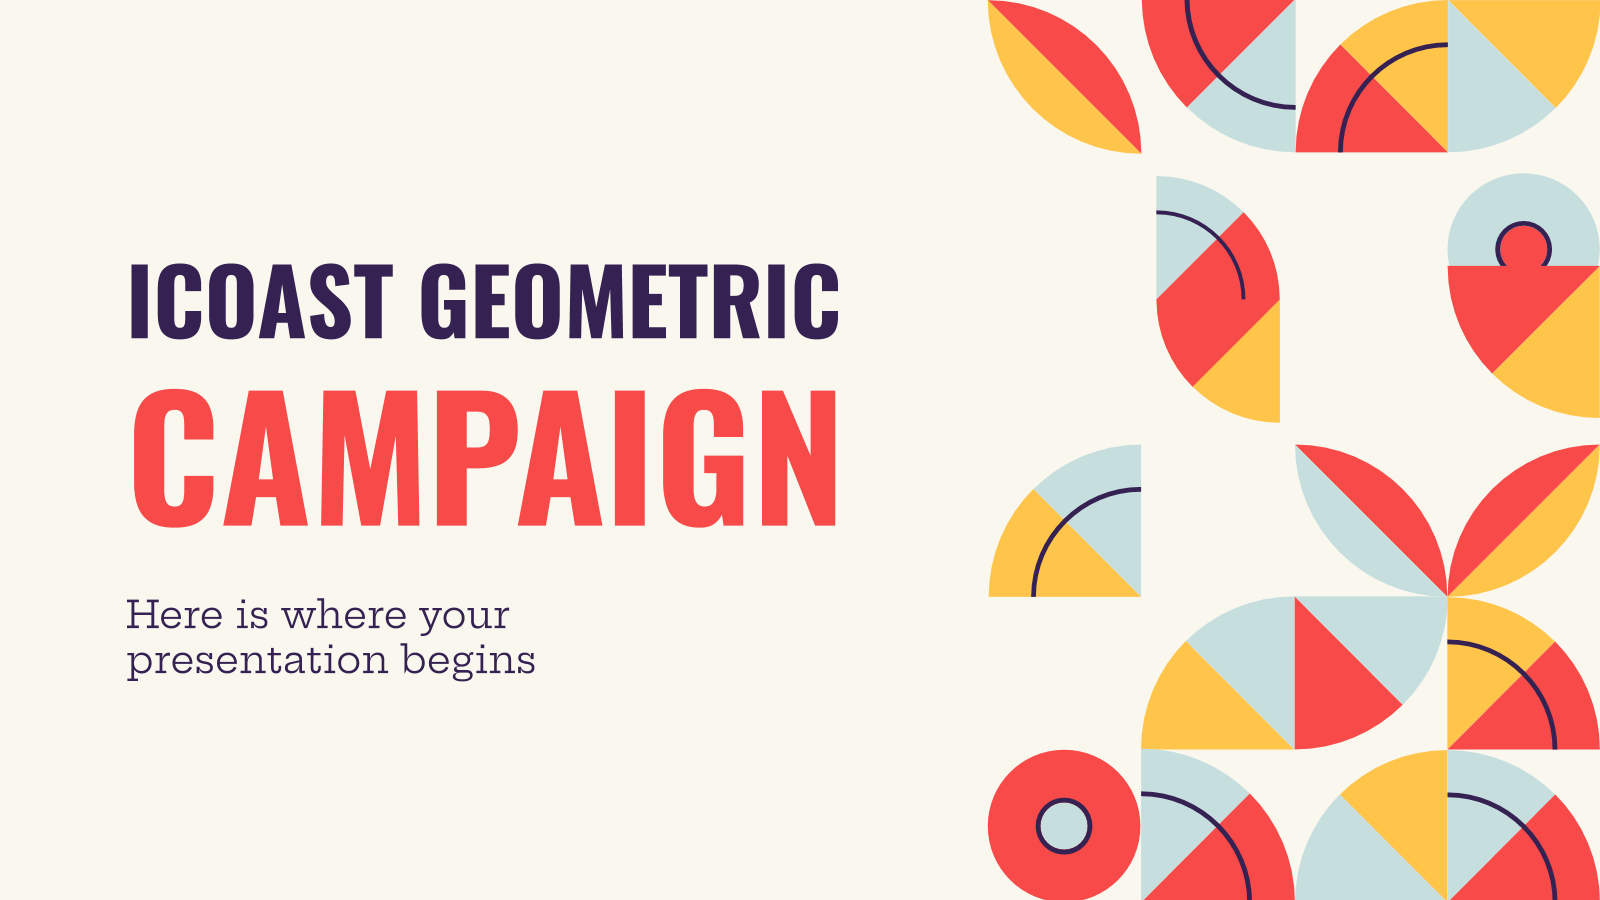 Icoast geometric campaign presentation template